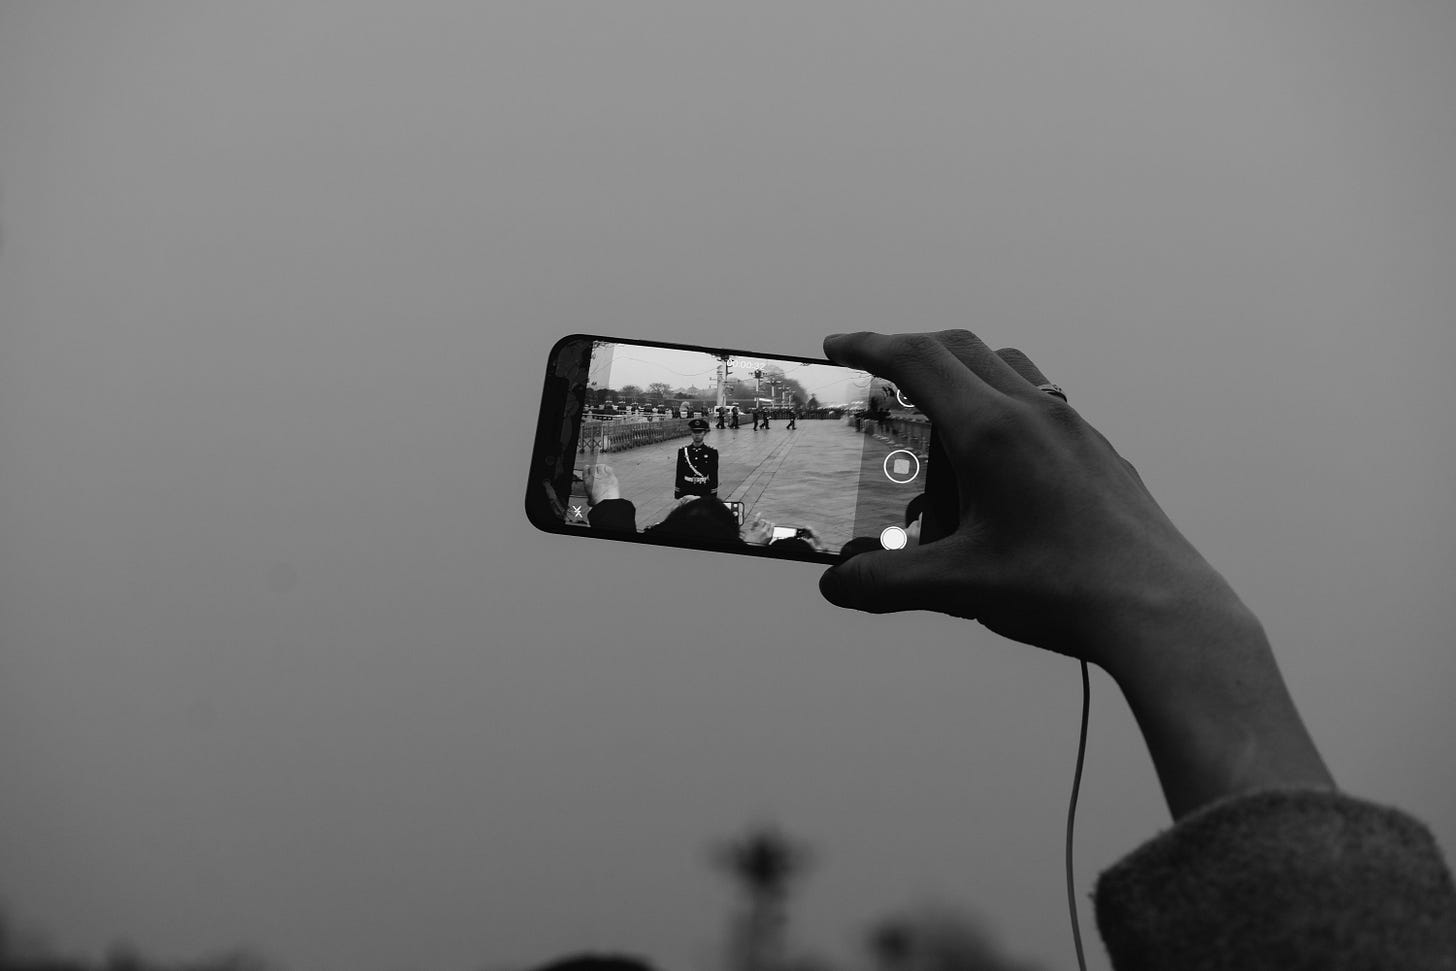 Grayscale photo of a hand holding an iphone taking video. Markus Winkler / Unsplash